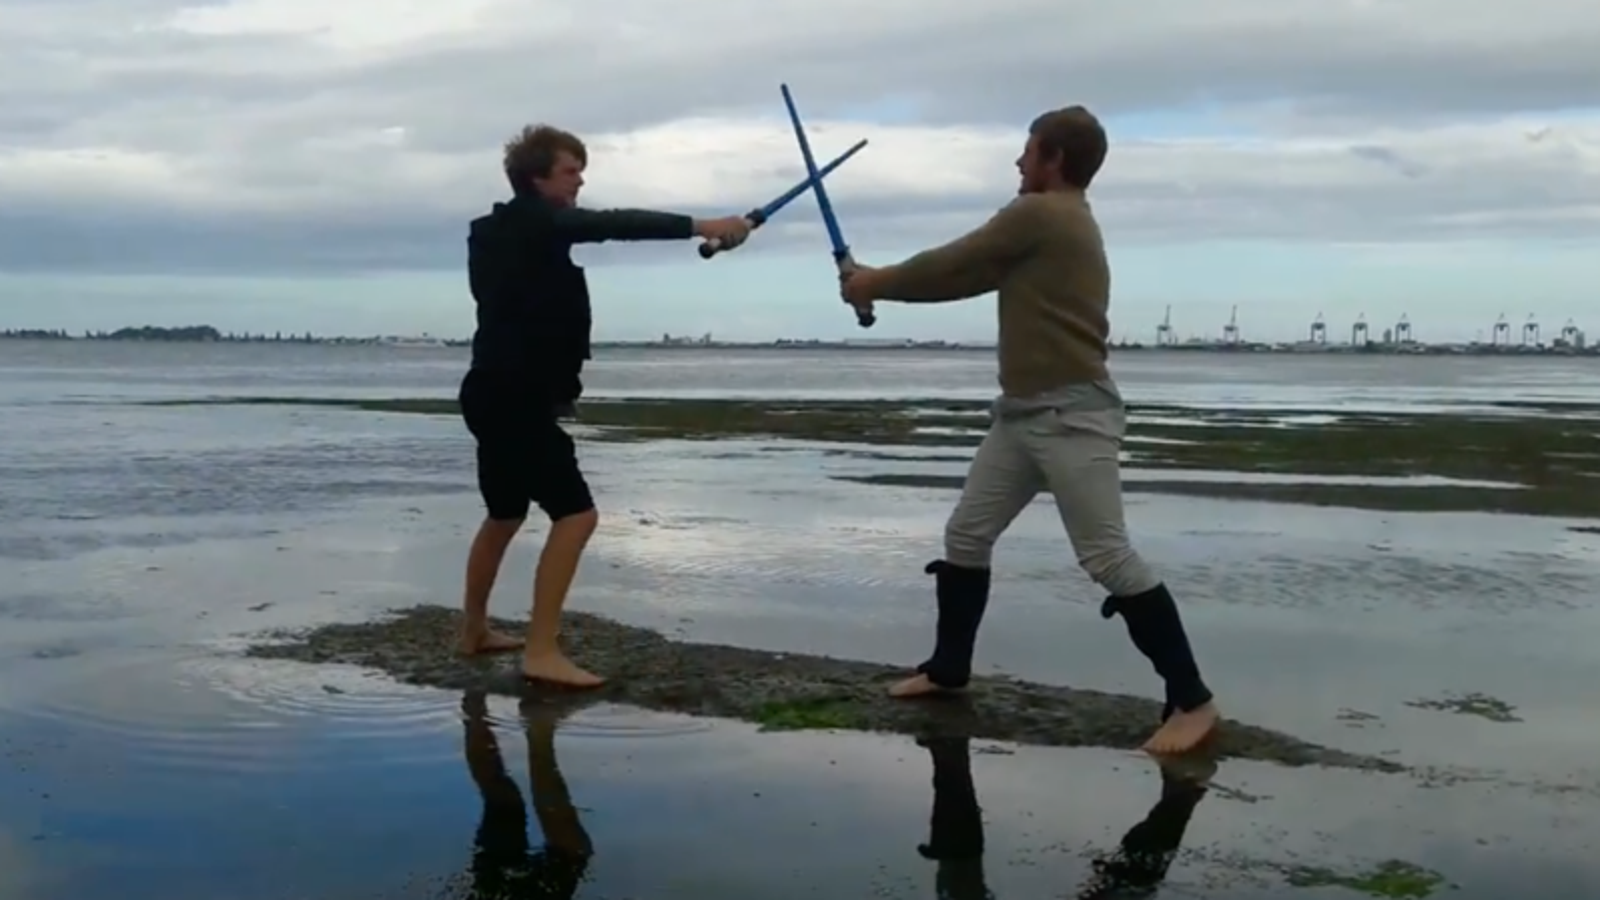 Three Star Wars Fans Made a Shot-for-Shot Remake of Revenge of the Sith